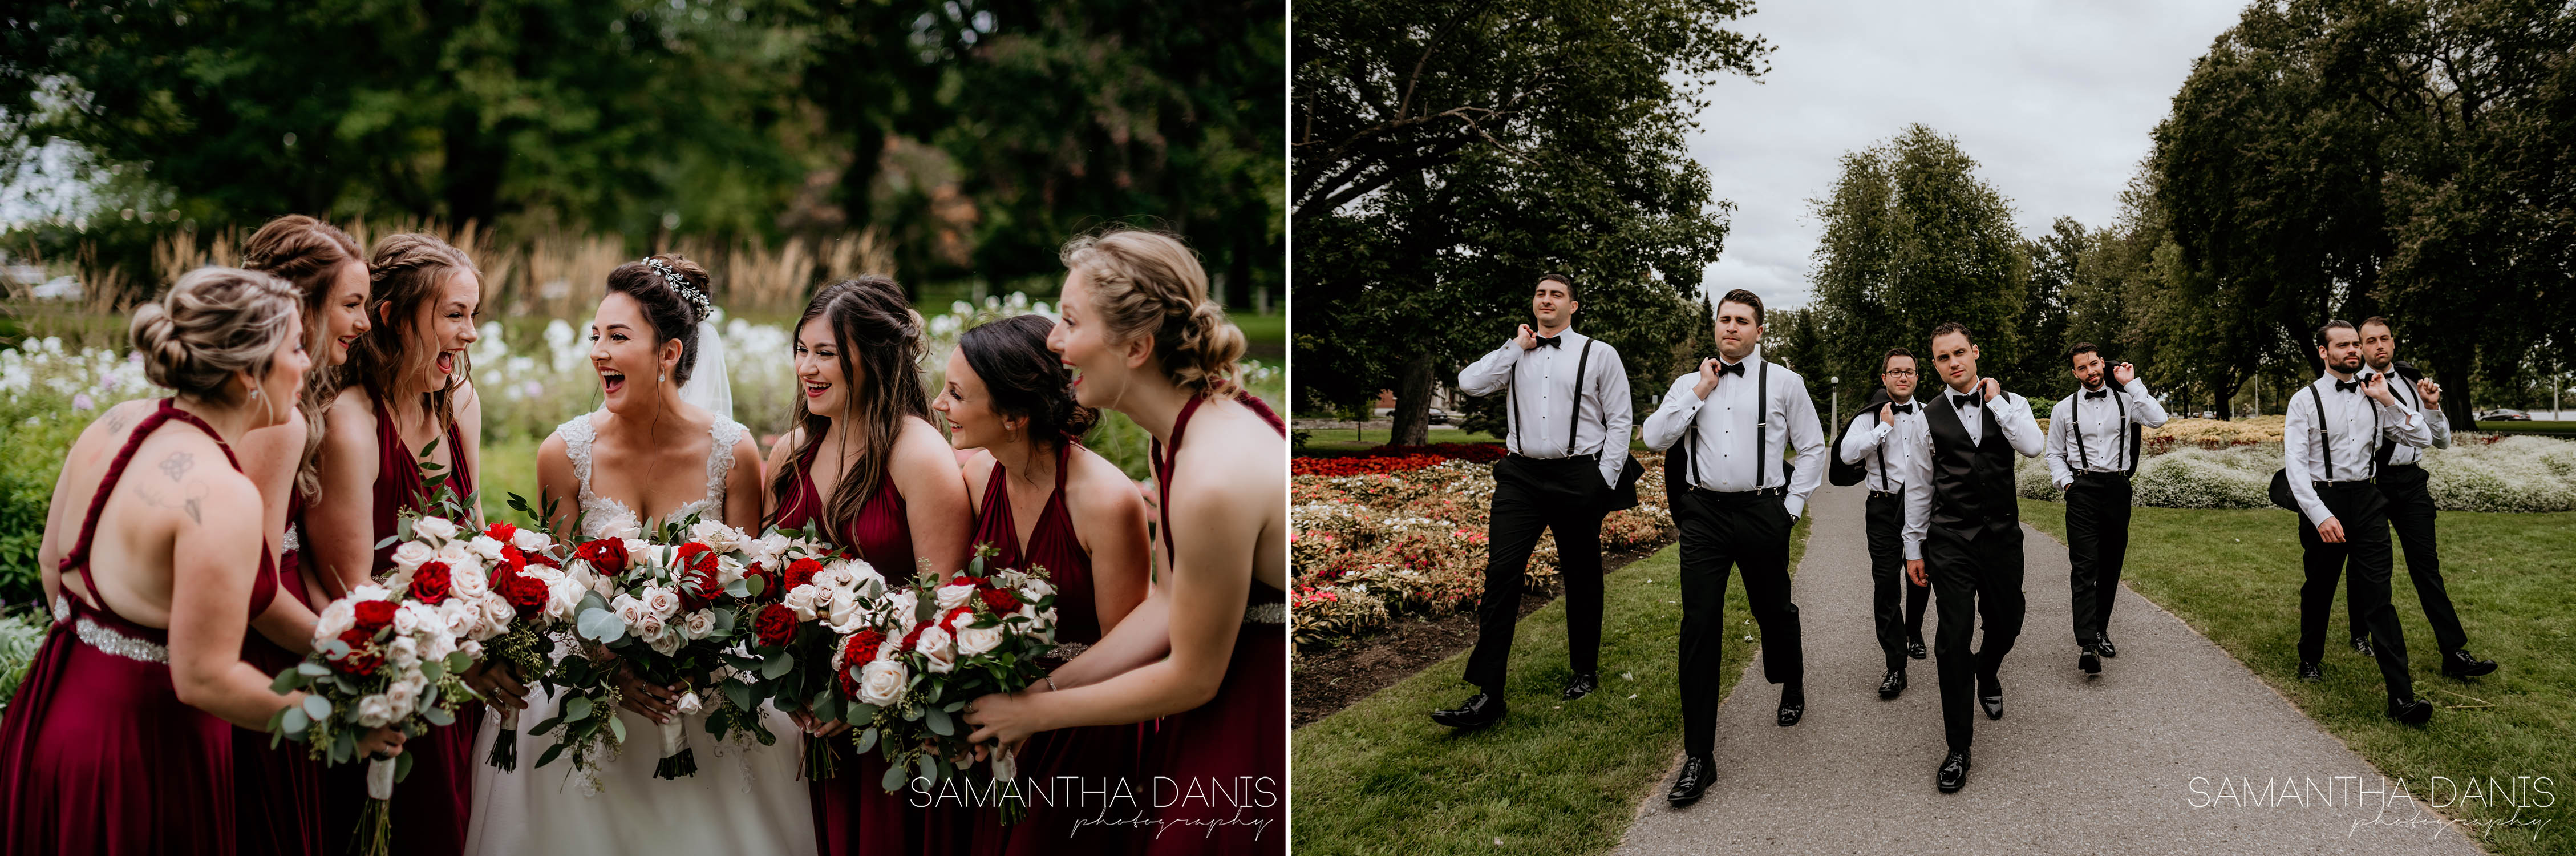 ottawa wedding photographer Dow's lake samantha danis photography disney wedding